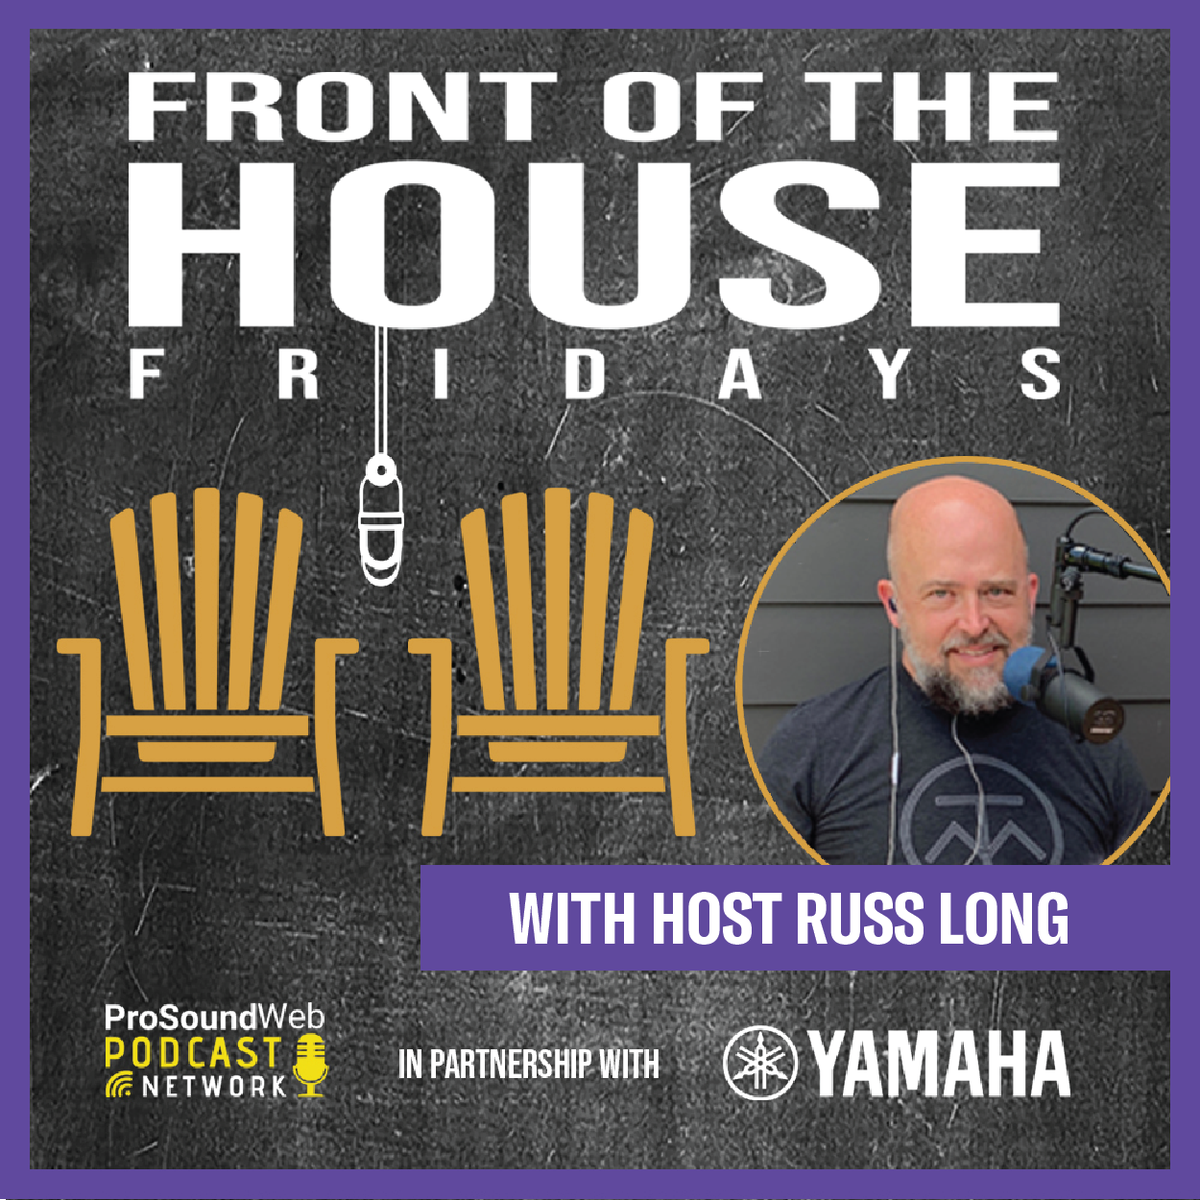 "Yamaha Professional Audio has teamed up with https://t.co/lPGwwt9uXF to bring you the ""Front Of The House Fridays"" Podcast Series, featuring conversations with industry leading audio engineers. #yamaha Listen at the link below: https://t.co/FaX0cWPOes https://t.co/BcMthYVZA4"